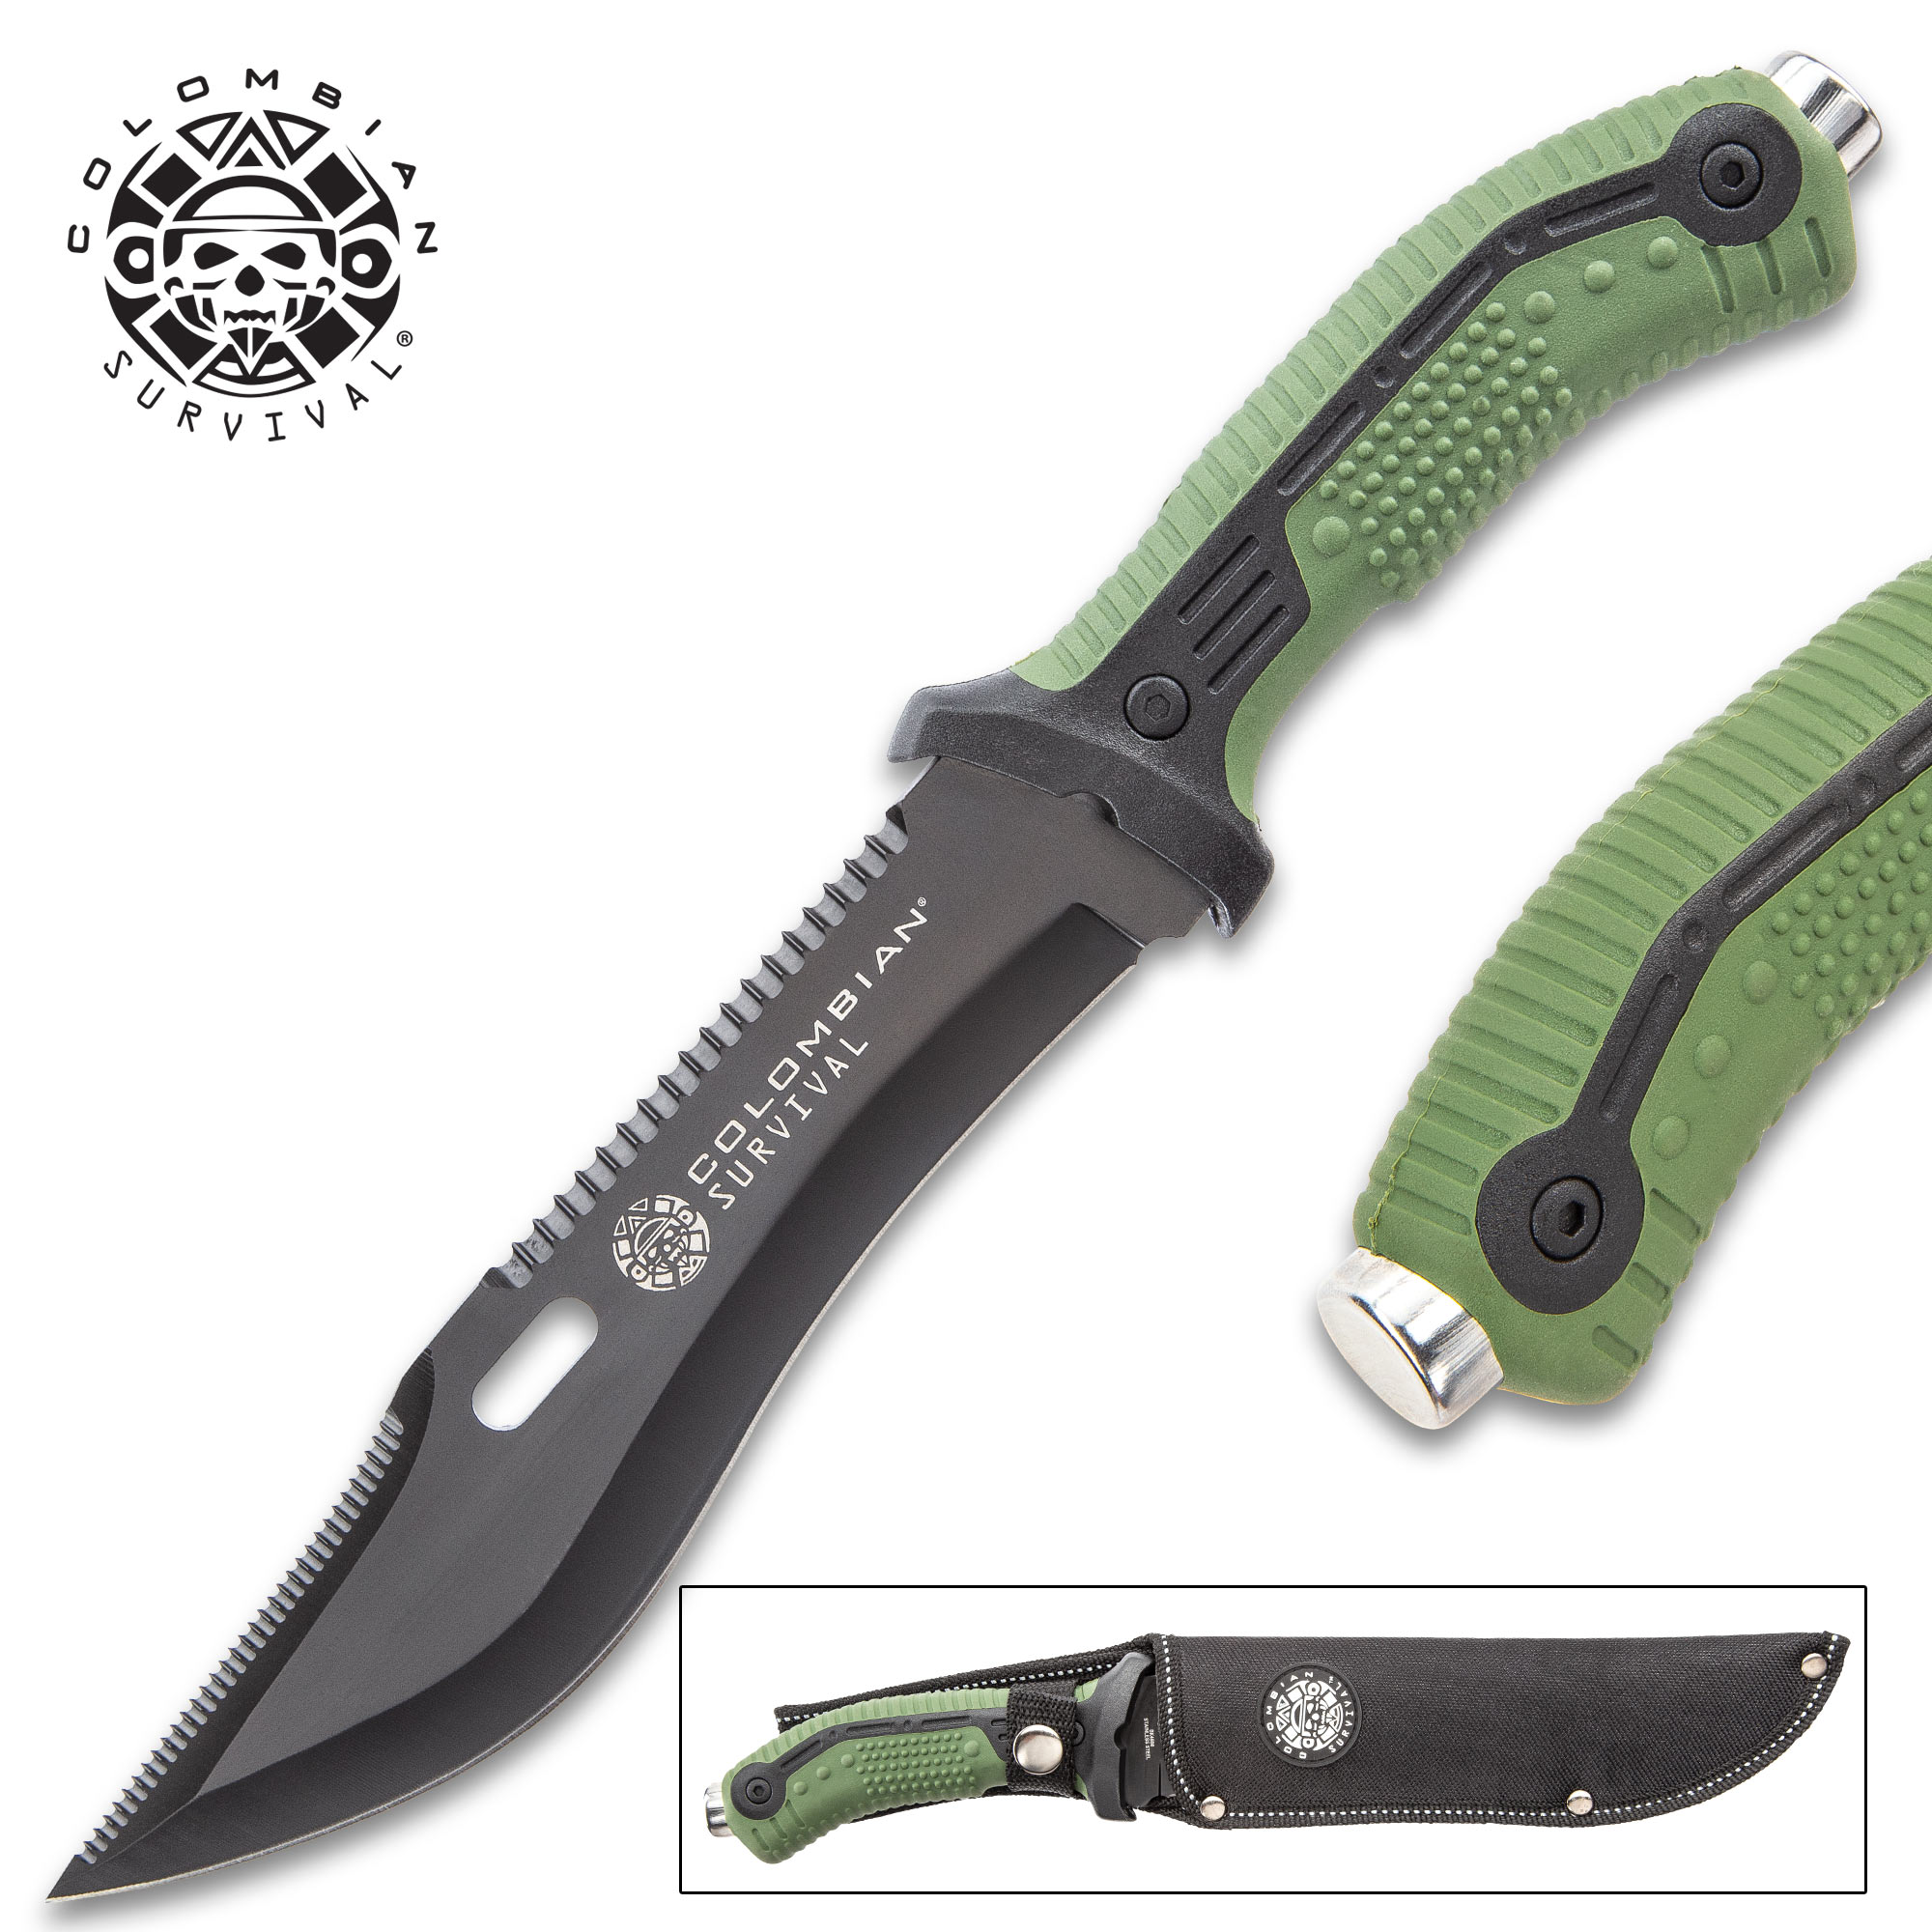 Colombian Bogota Survival Fixed Blade Knife With Sheath - Stainless Steel  Blade, Serrations, Grippy TPR Handle - Length 12 7/10""